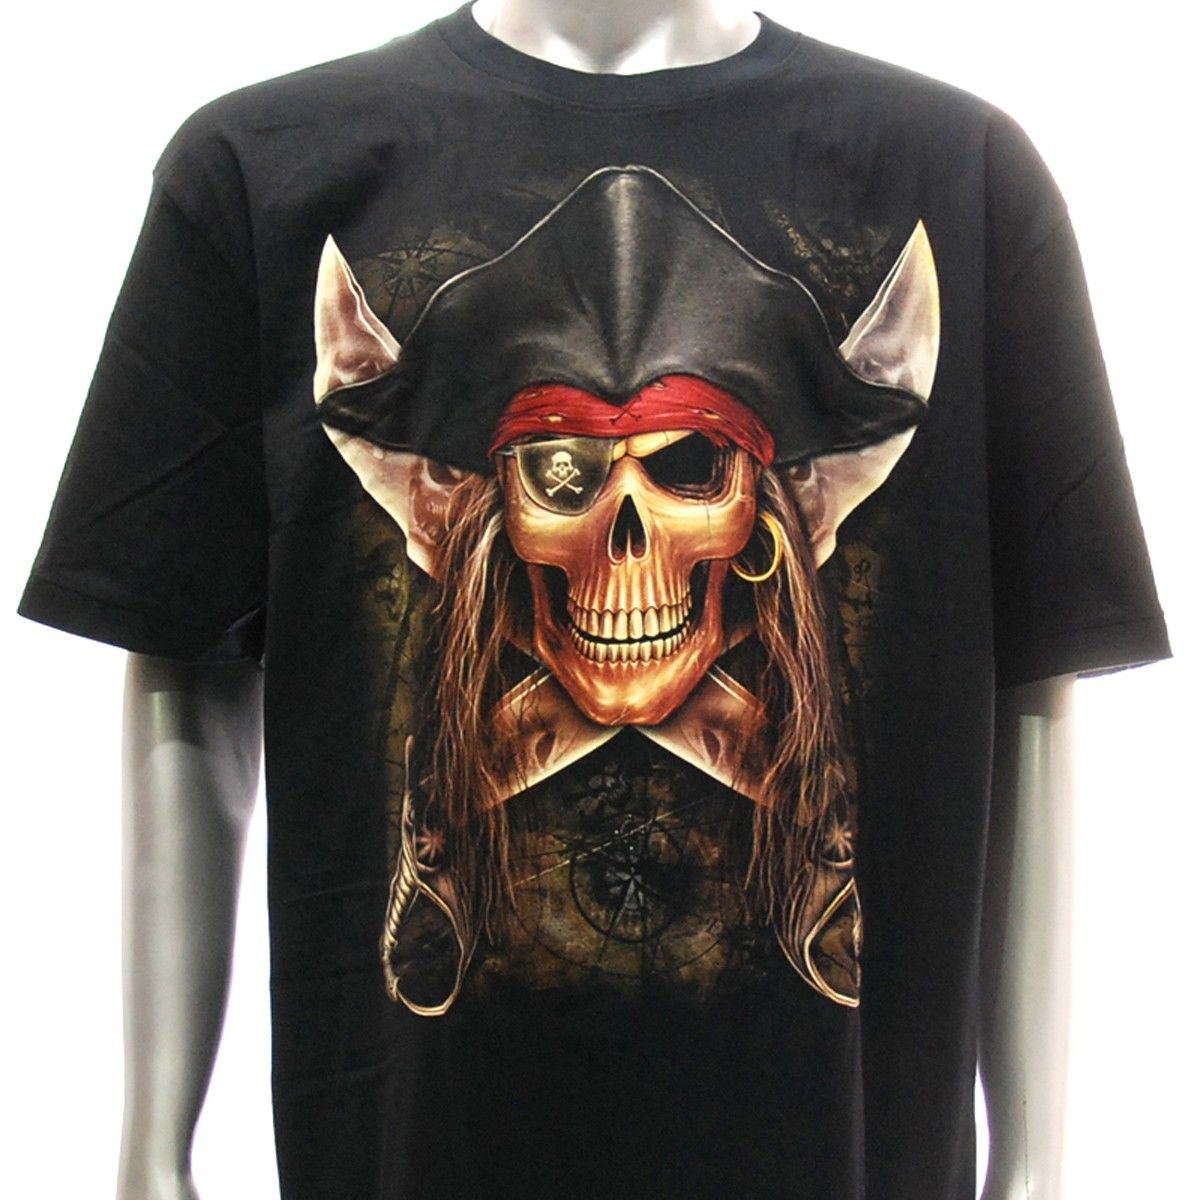 Details about the r134 Rock Eagle tattoo skull and bones glowing in the dark pirate ghost ship Caribbean